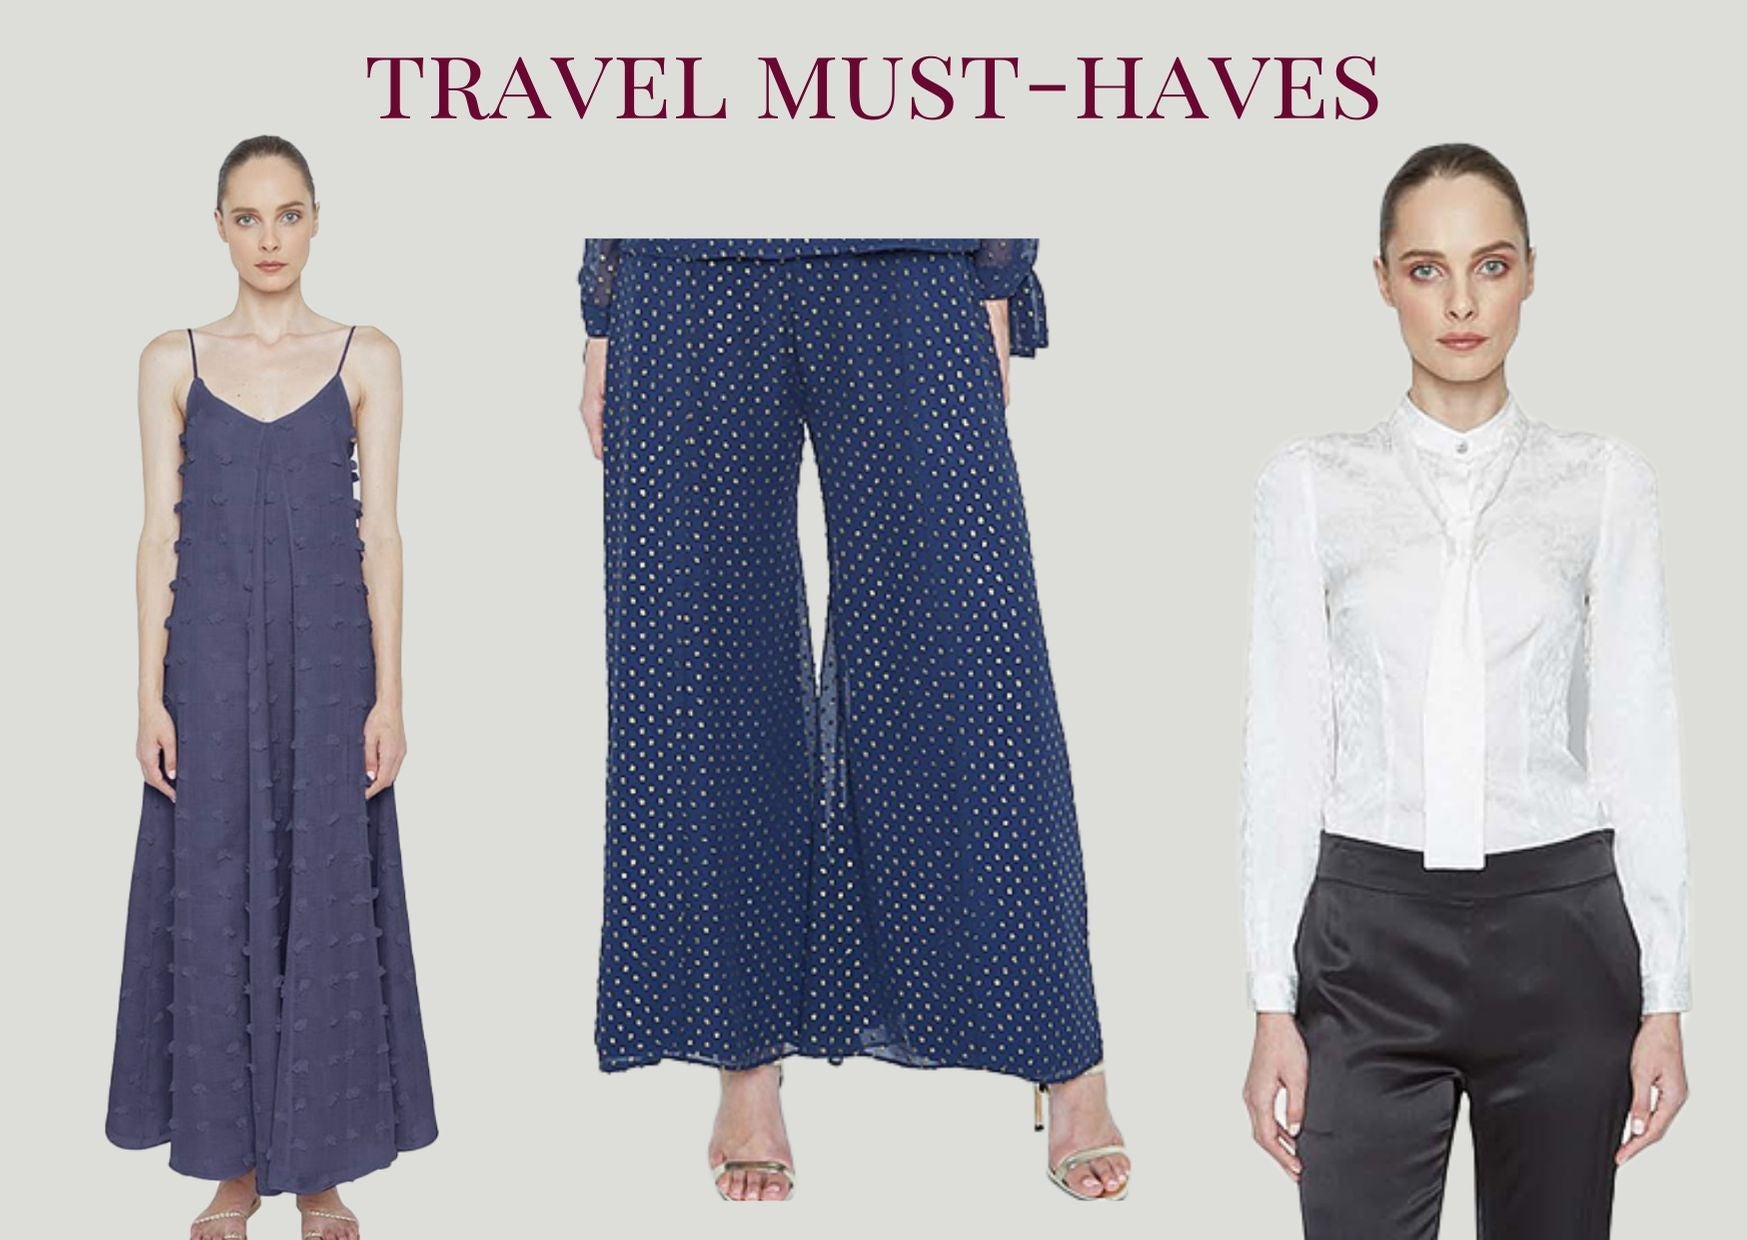 Queen Anna House of Fashion Travel Must-haves Maison de Papillon